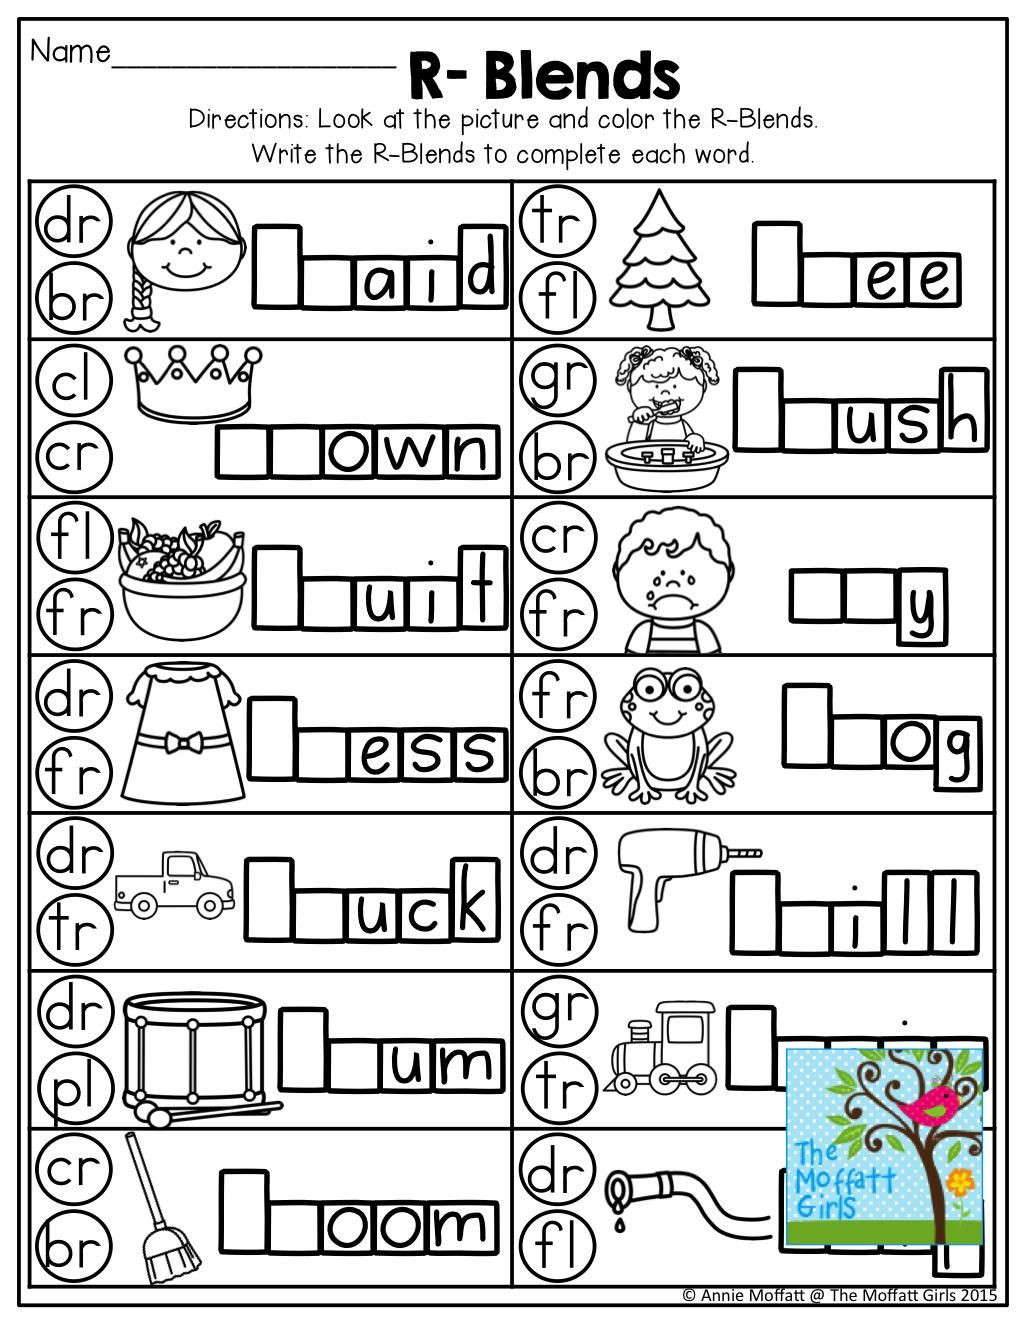 Free Printable R Blends Worksheets Pin On Letter Worksheets